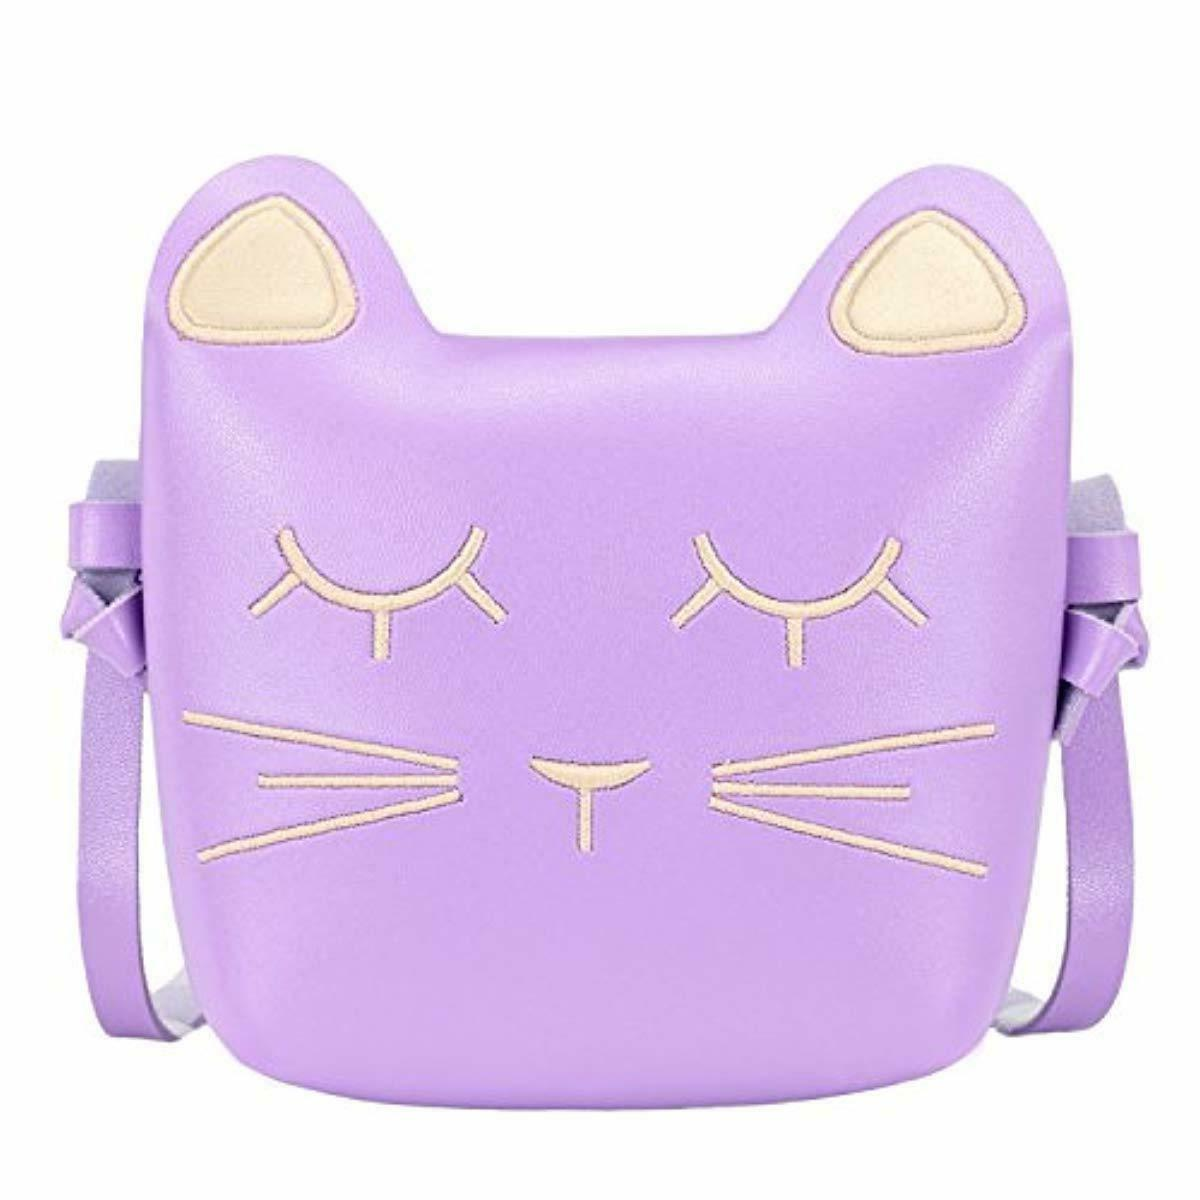 cat purse for little girls toddlers crossbody